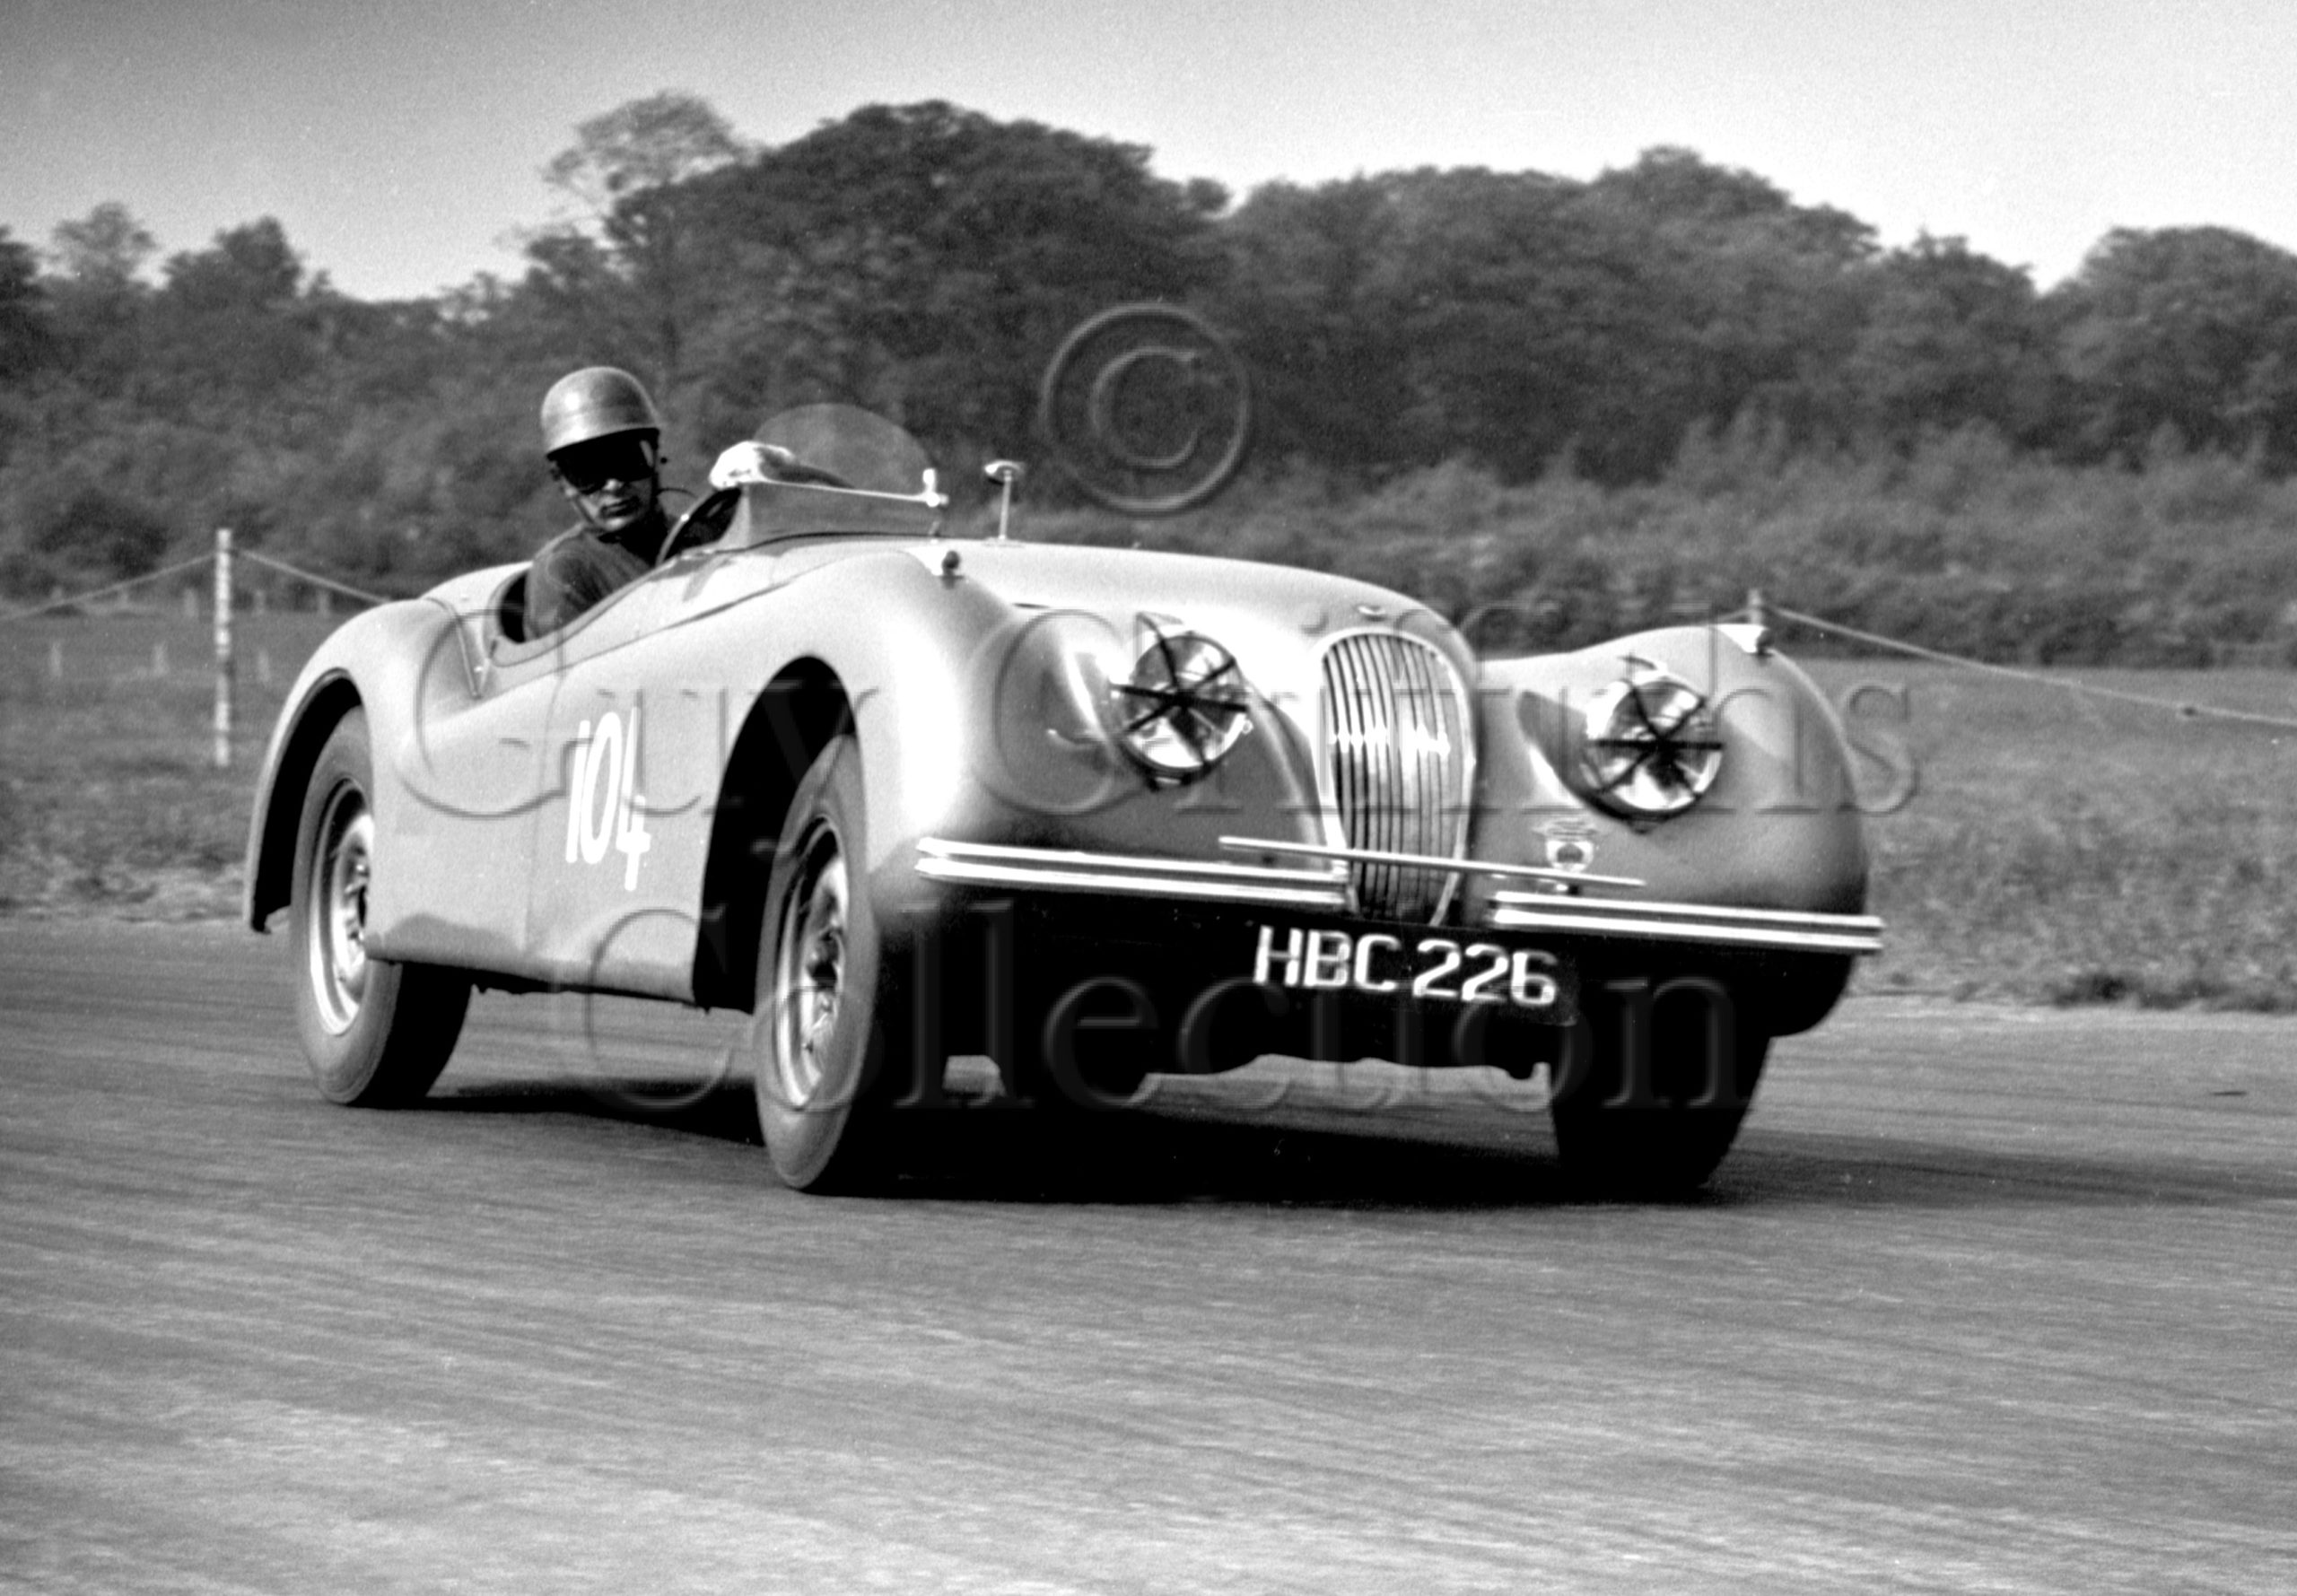 55-202–R-Salvadori–Jaguar–Silverstone–24-05-1952.jpg - Guy Griffiths Collection